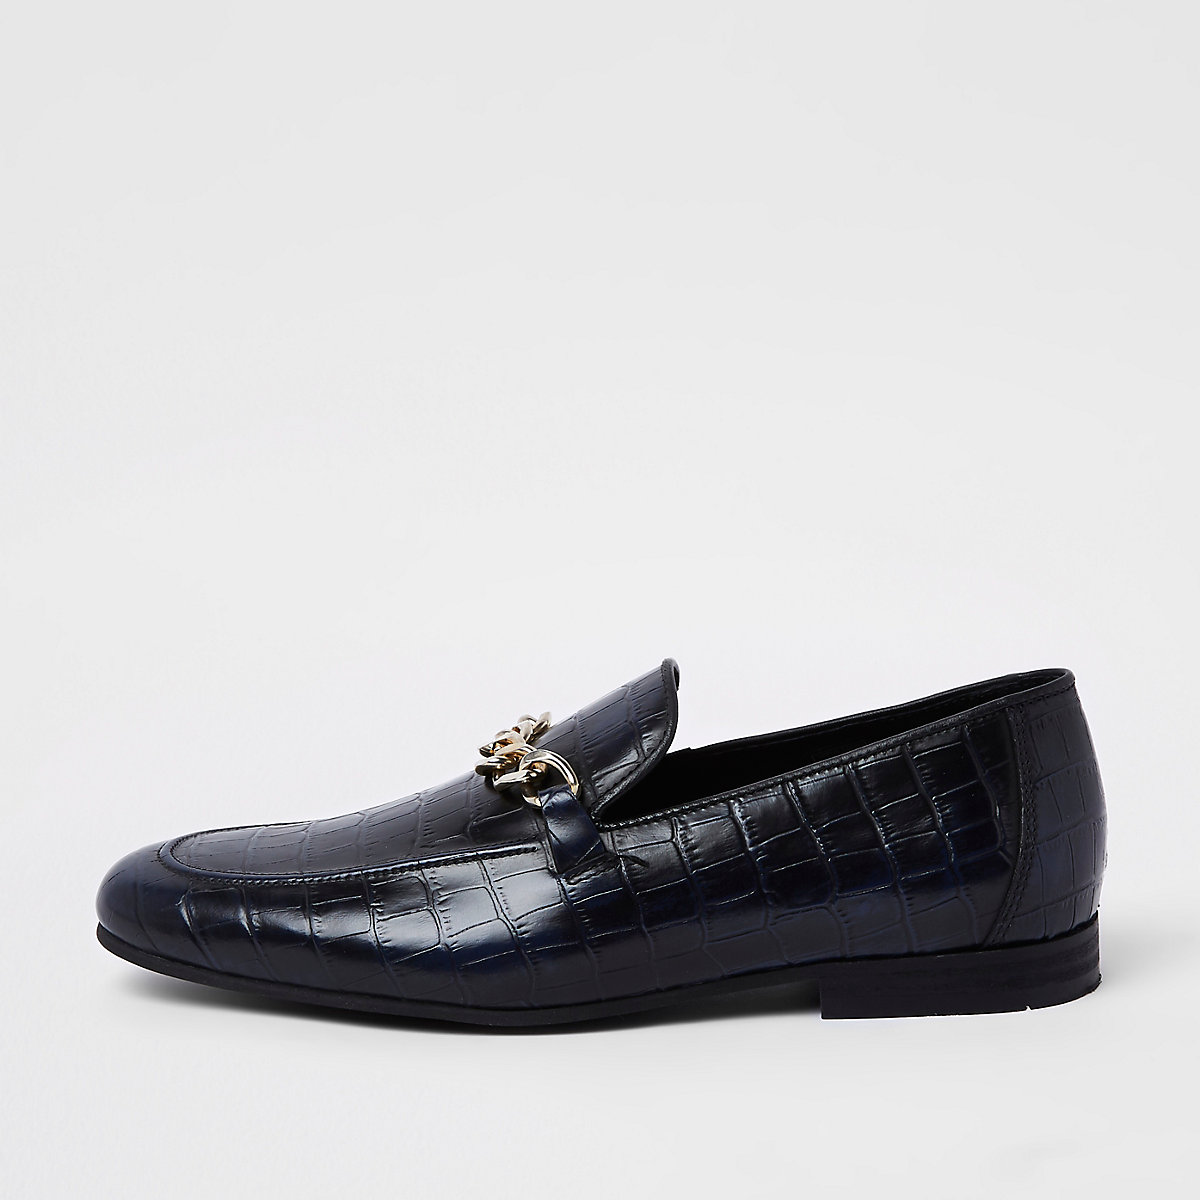 Navy high shine leather croc embossed loafers